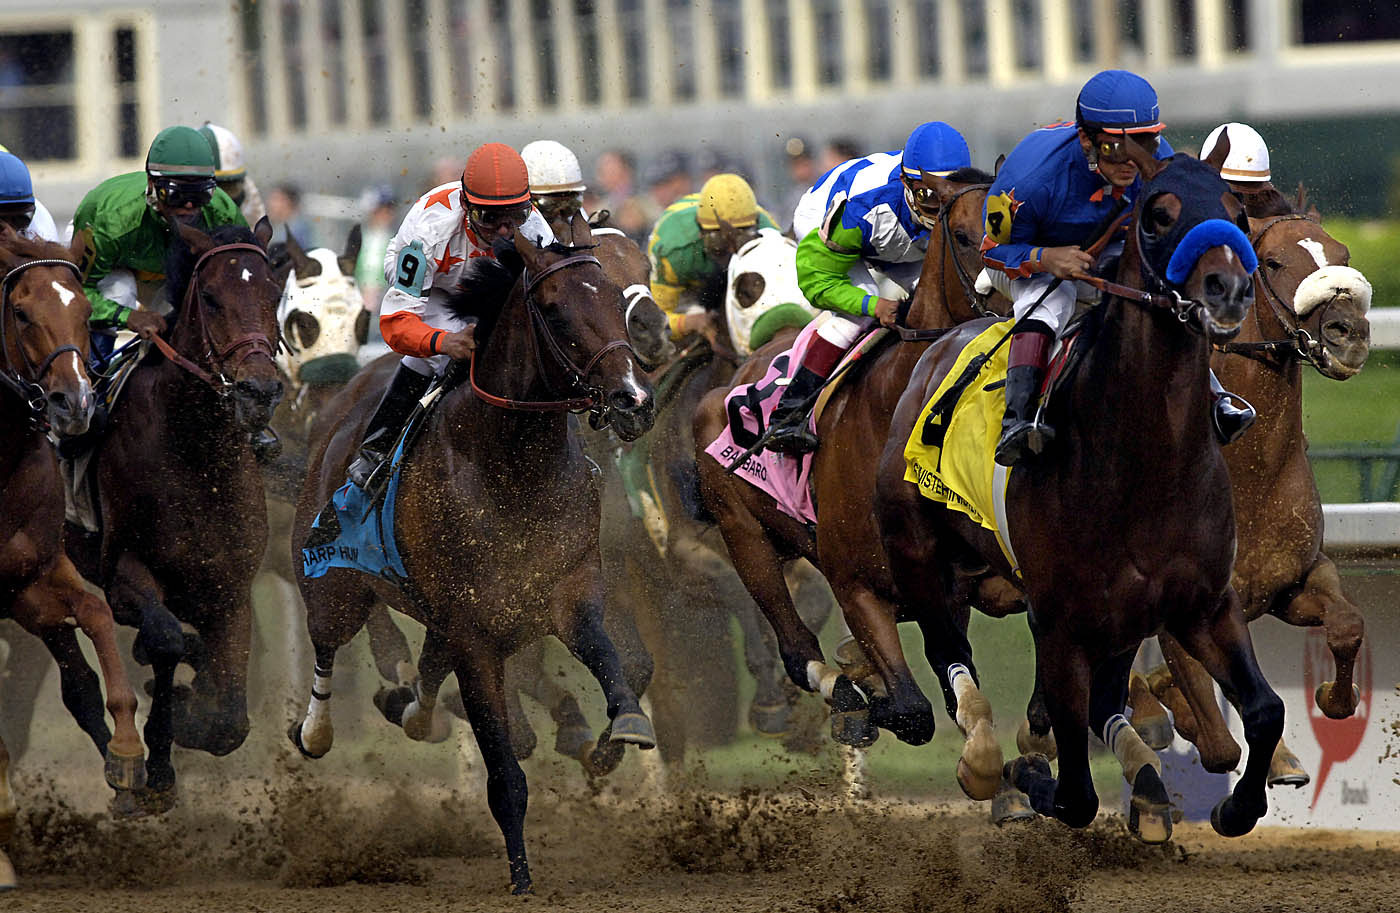 Following a stumble at the opening gate, undefeated Barbaro managed to fight his way back into a runaway victory at the running of the 132nd Kentucky Derby on May 6, 2006.  Peruvian born jockey Edgar Prado marks his seventh derby appearance and first victory.